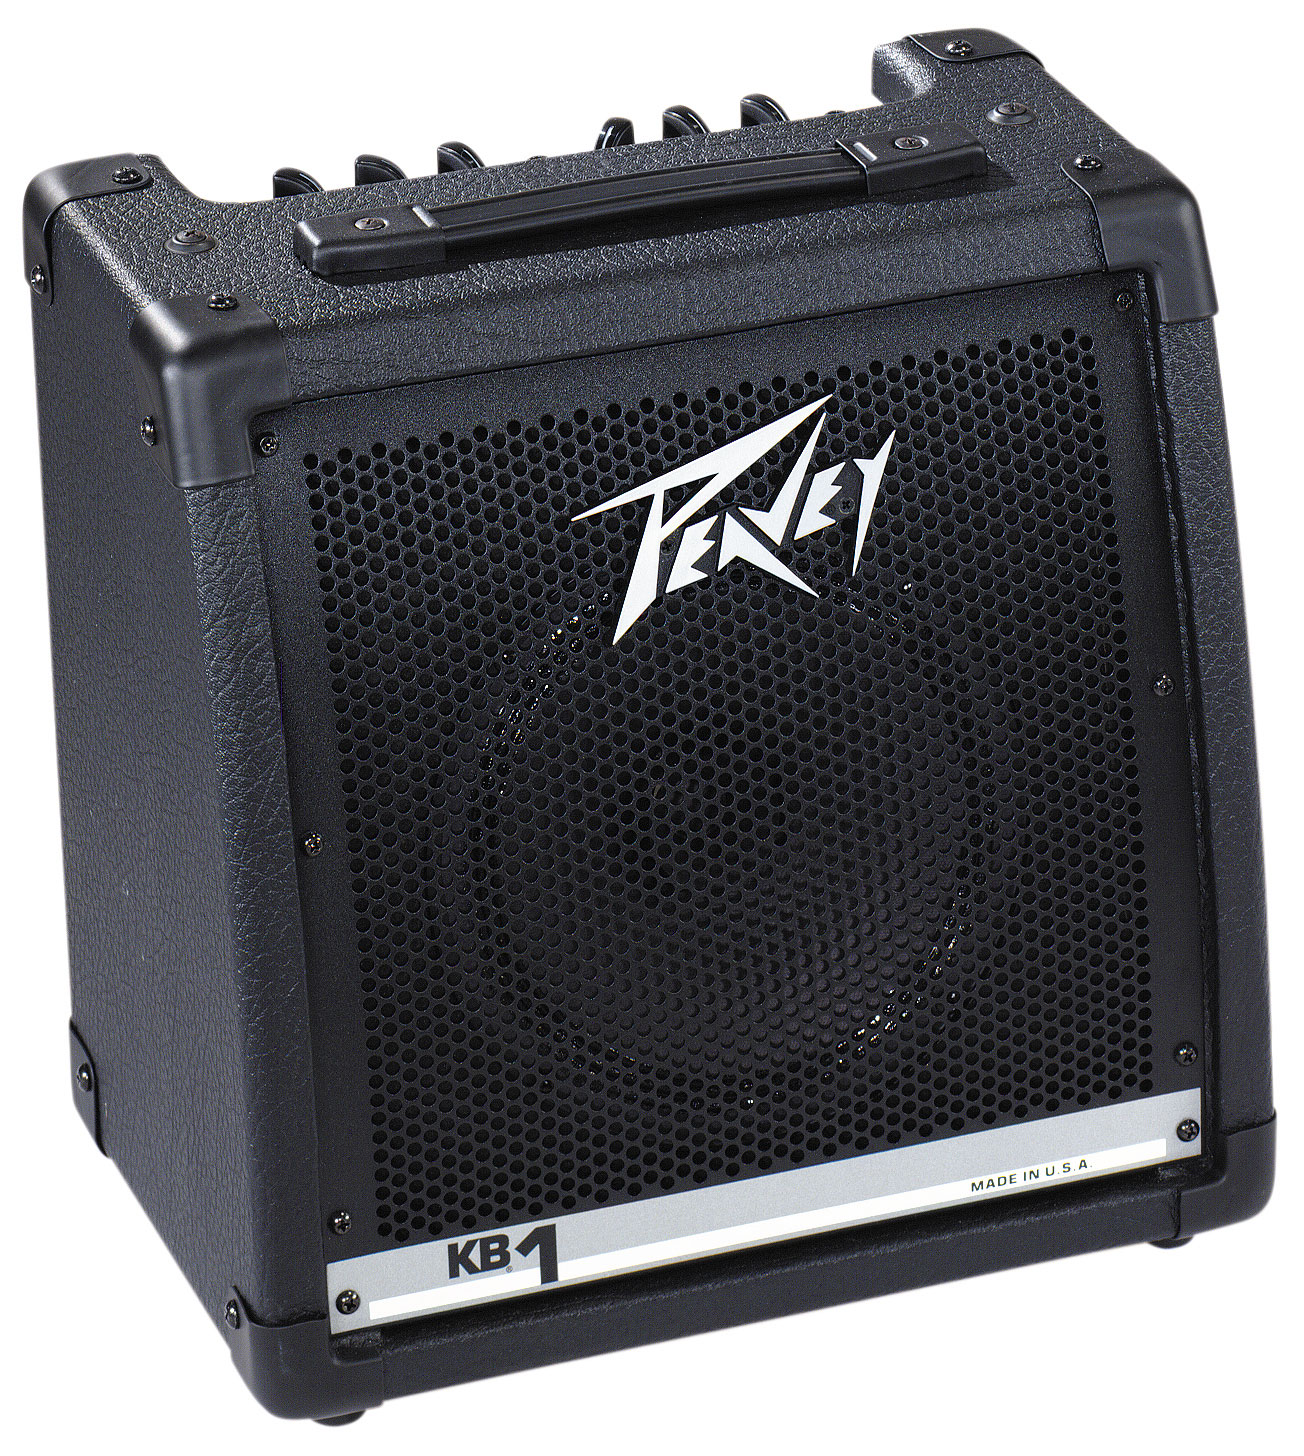 Peavey KB 1 Keyboard Amplifier